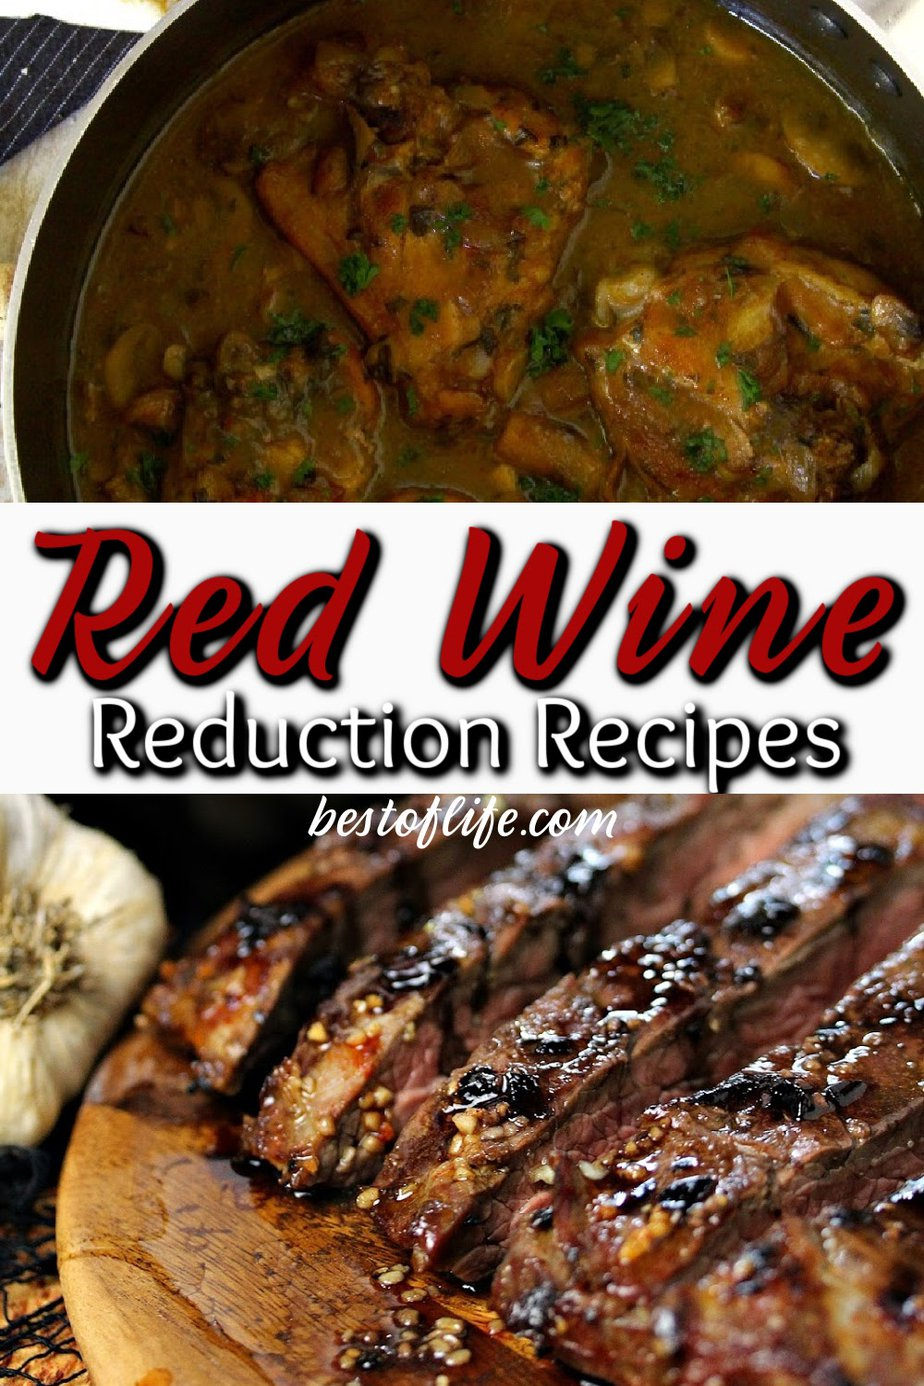 "Using a red wine reduction in your recipe is super easy and provides great results. Not to mention, people will be impressed with your cooking ""skills."" Recipes with Red Wine 